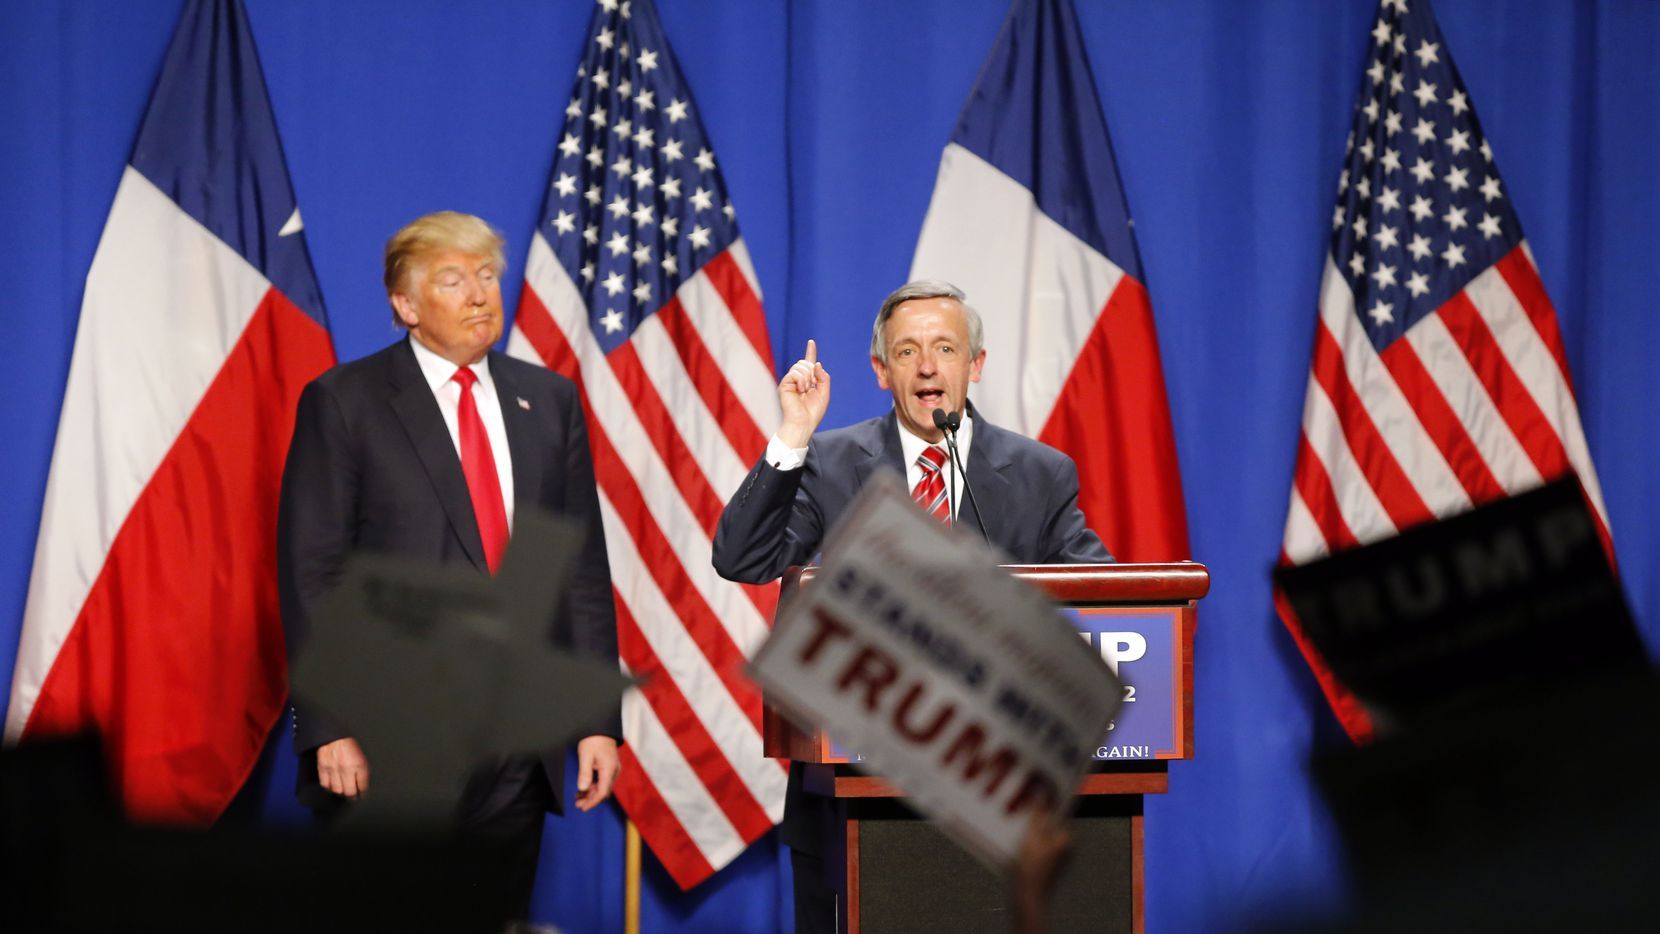 First Baptist Dallas' Robert Jeffress speaks ahead of then-candidate Donald Trump during a rally at the Fort Worth Convention Center in 2016.